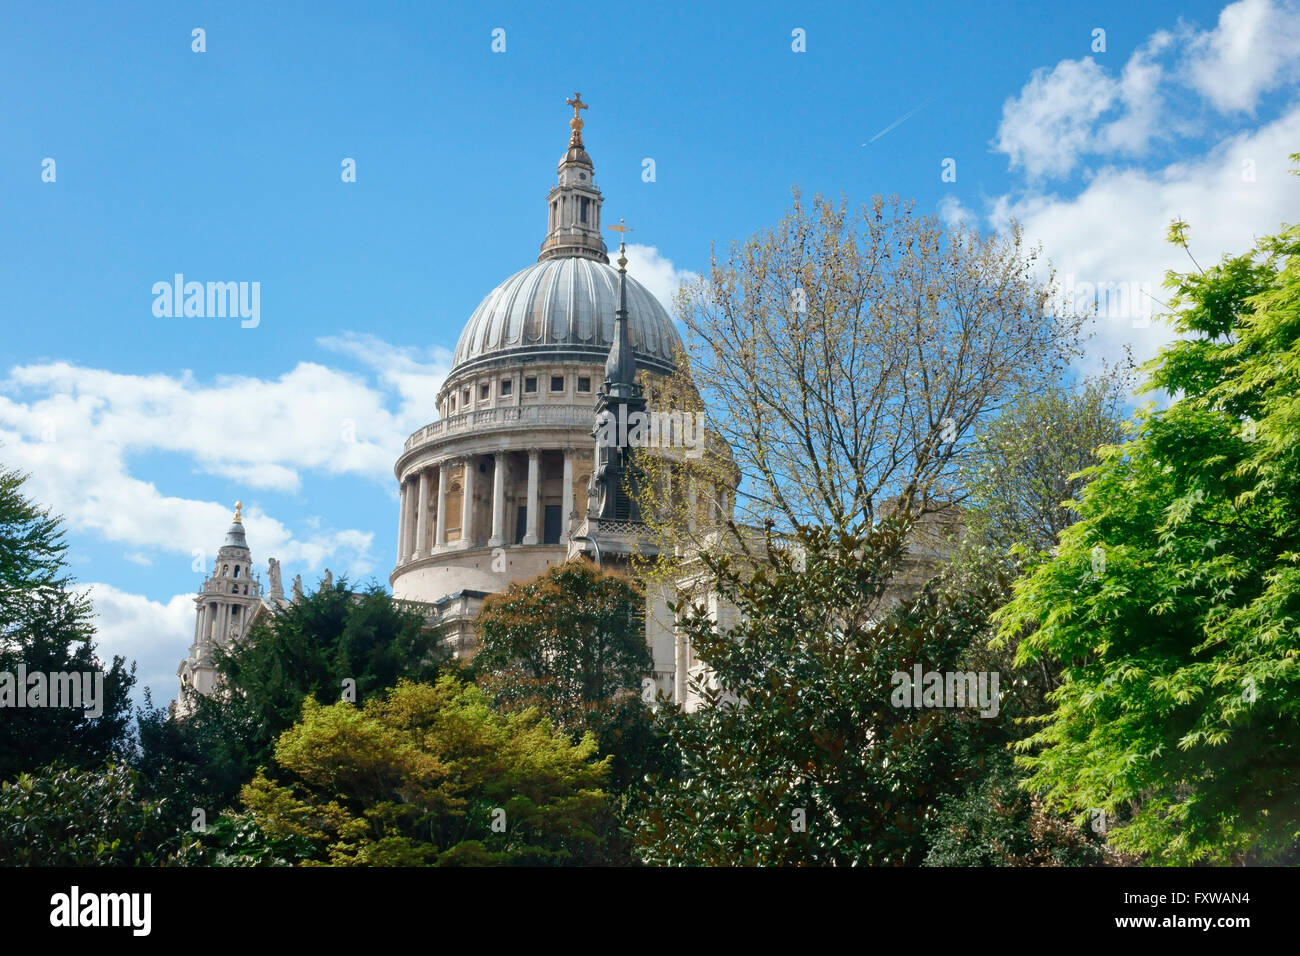 La Cathédrale St Paul, dans la ville de Londres, Angleterre, Grande-Bretagne, Royaume-Uni, FR, UK Photo Stock